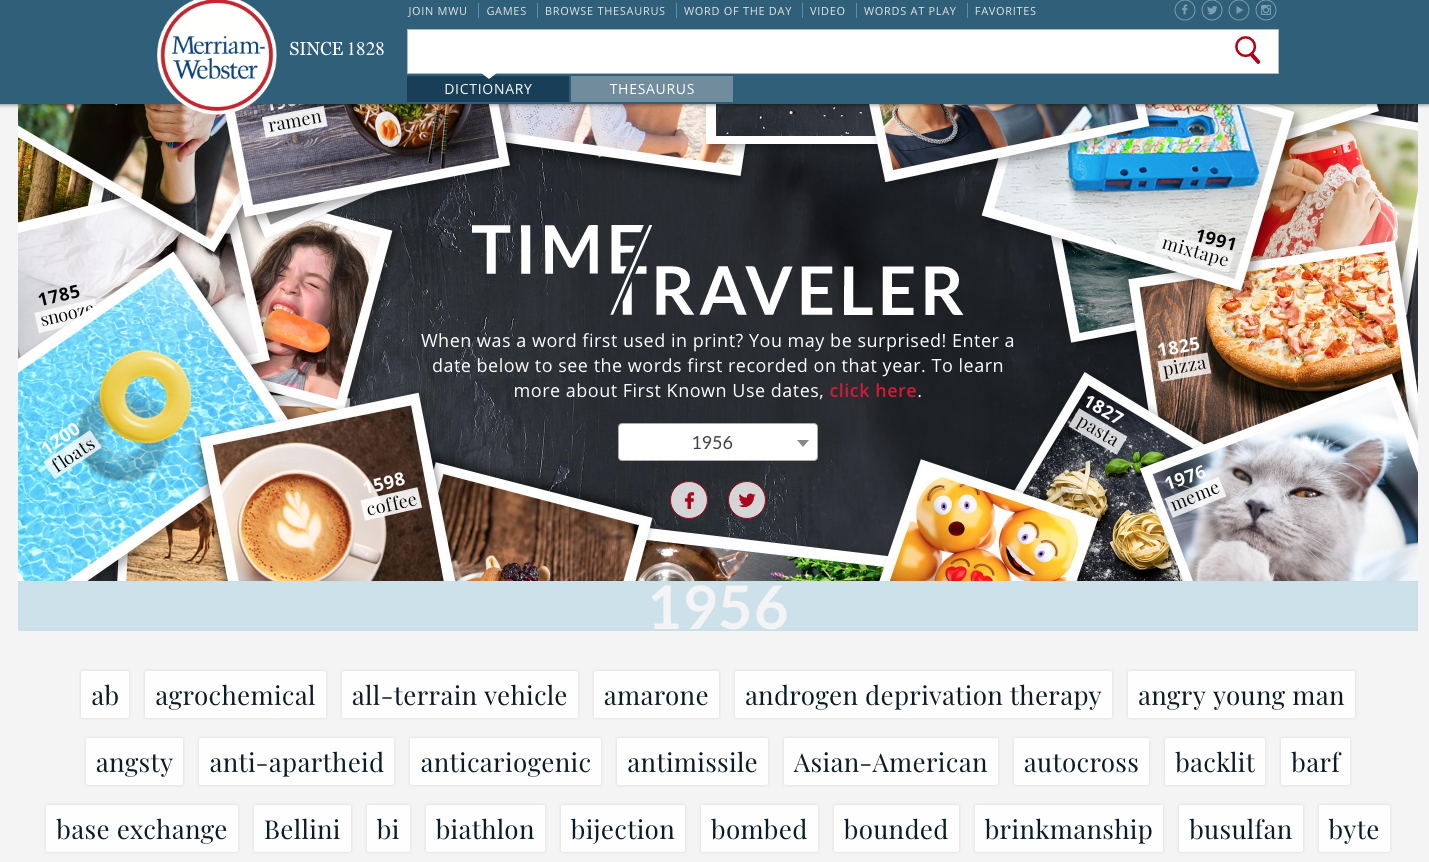 Learn when a word was first used in print with Merriam-Webster's Time Traveler feature